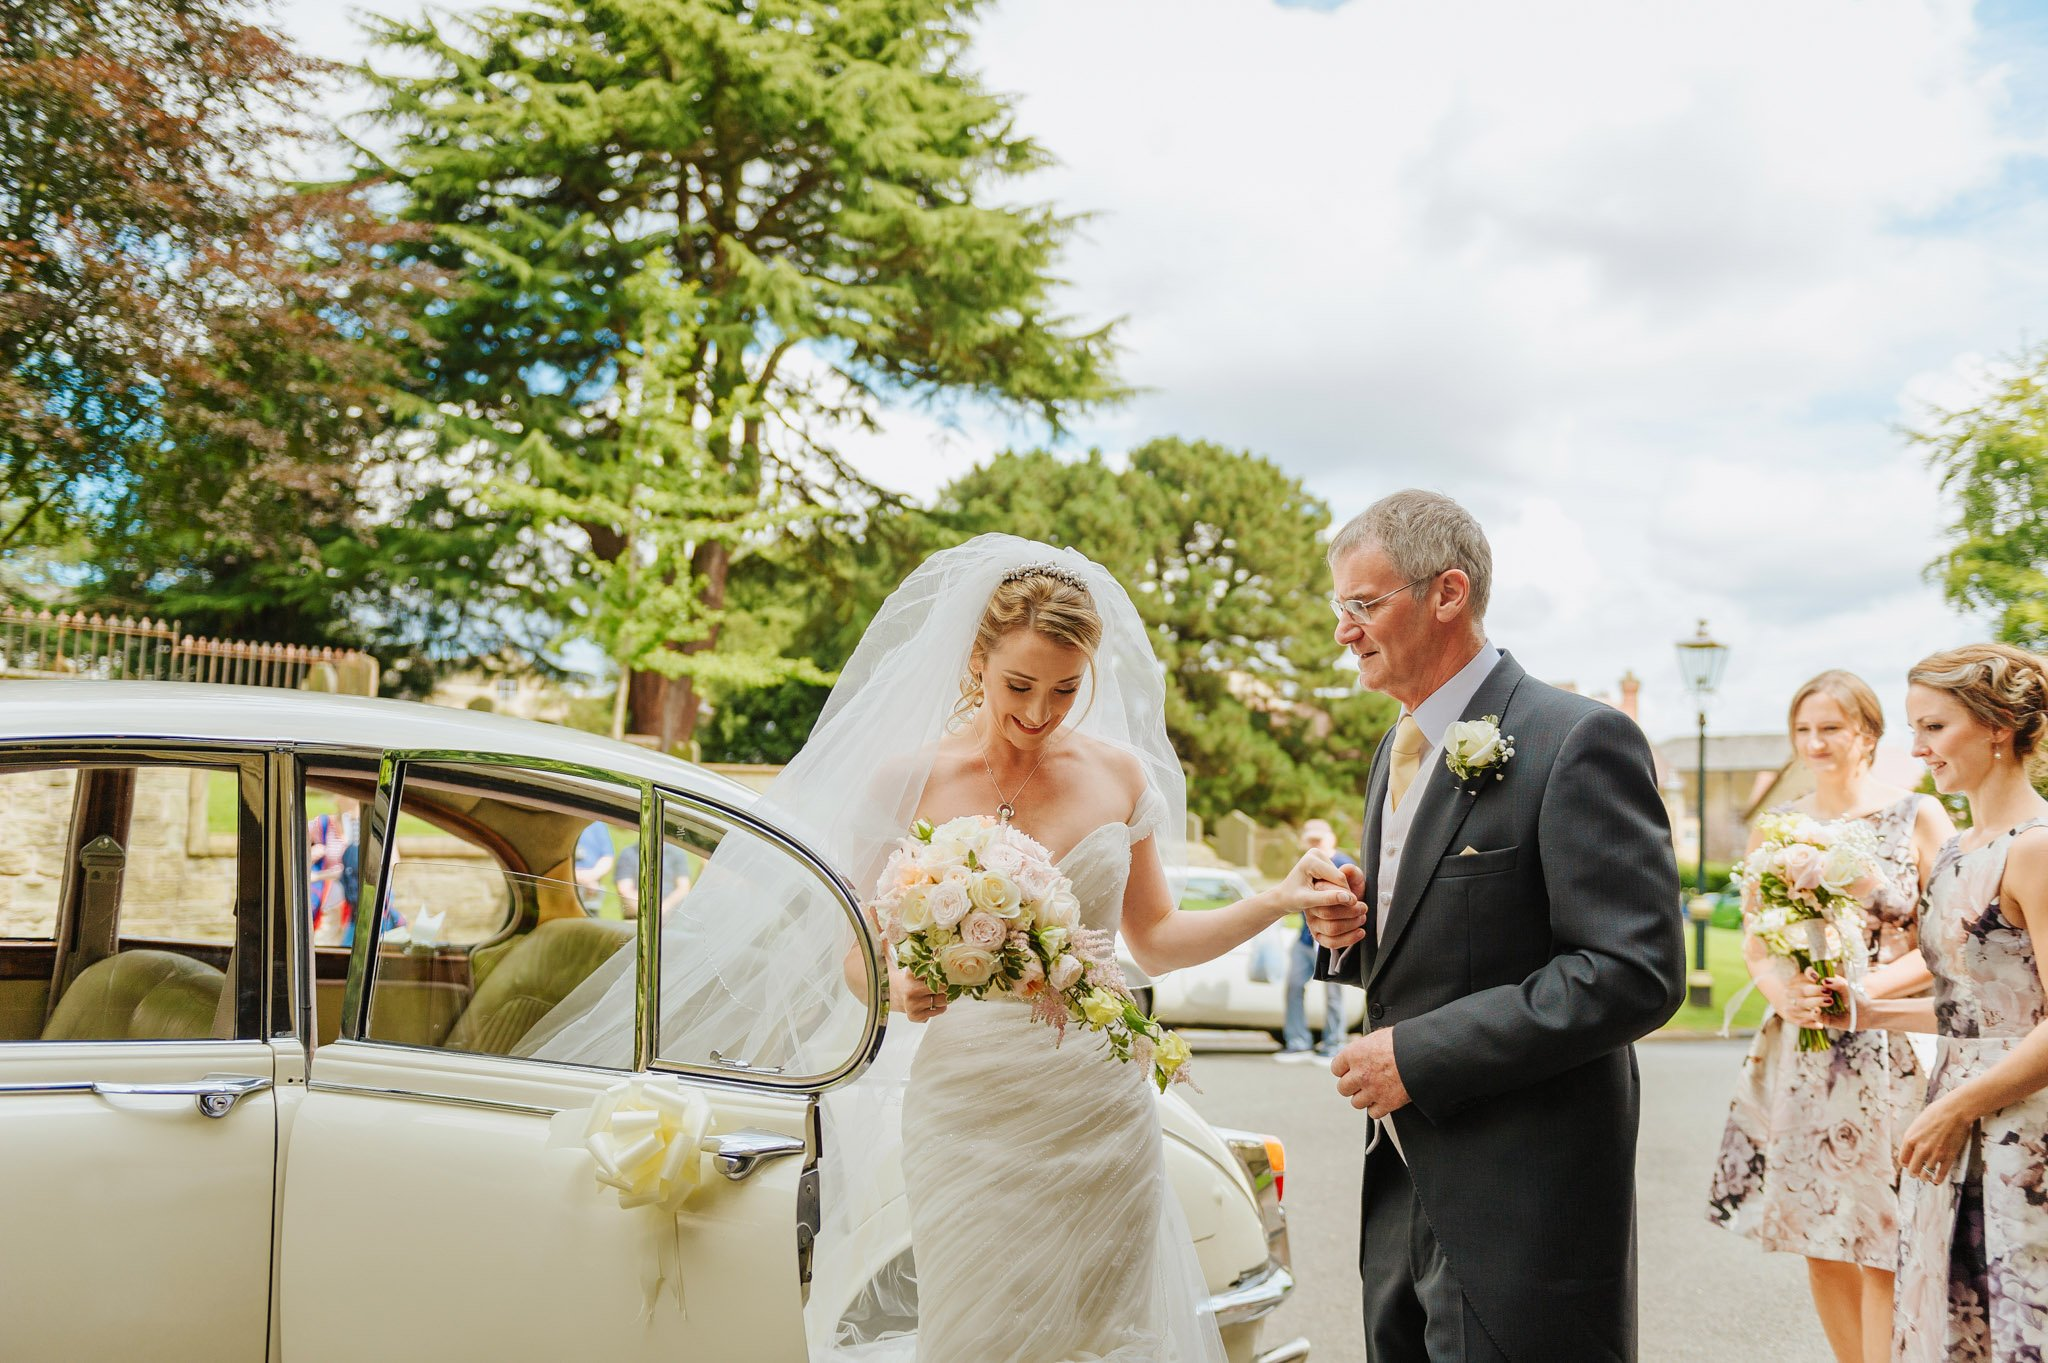 Georgina + Mike - Wedding photography in Malvern, Worcestershire 24